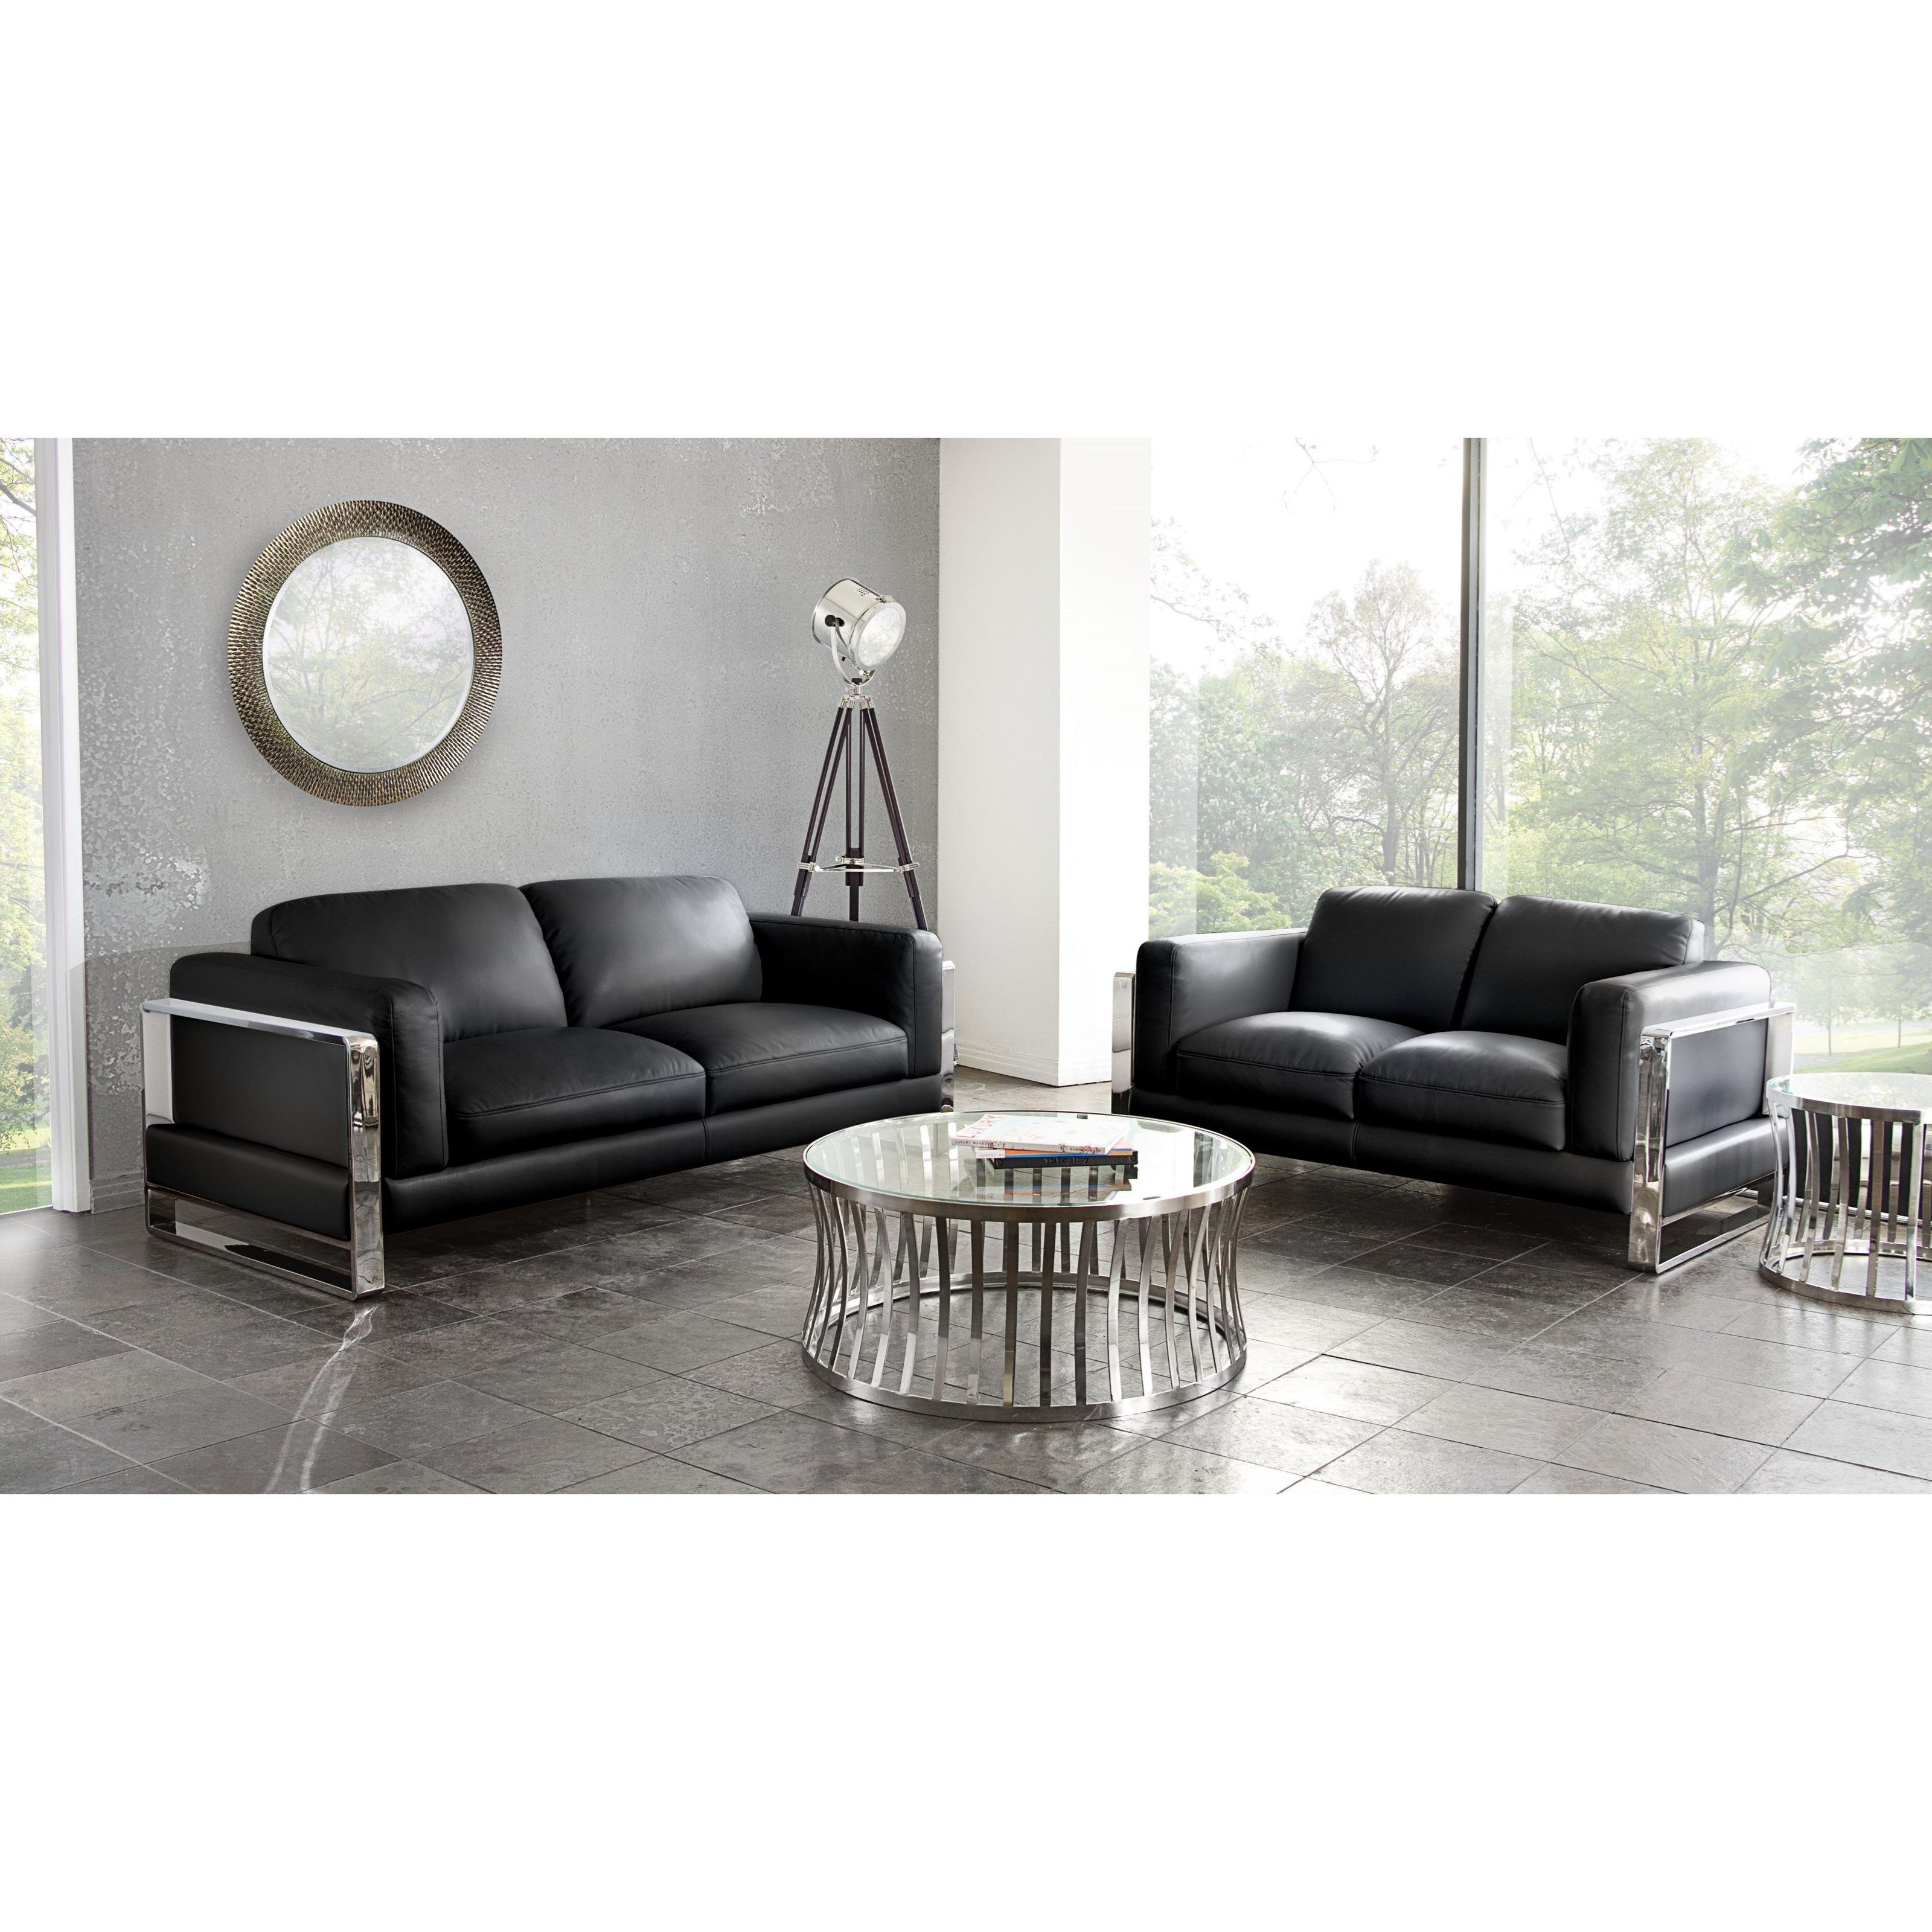 Annika Sofa and Loveseat Package by Diamond Sofa